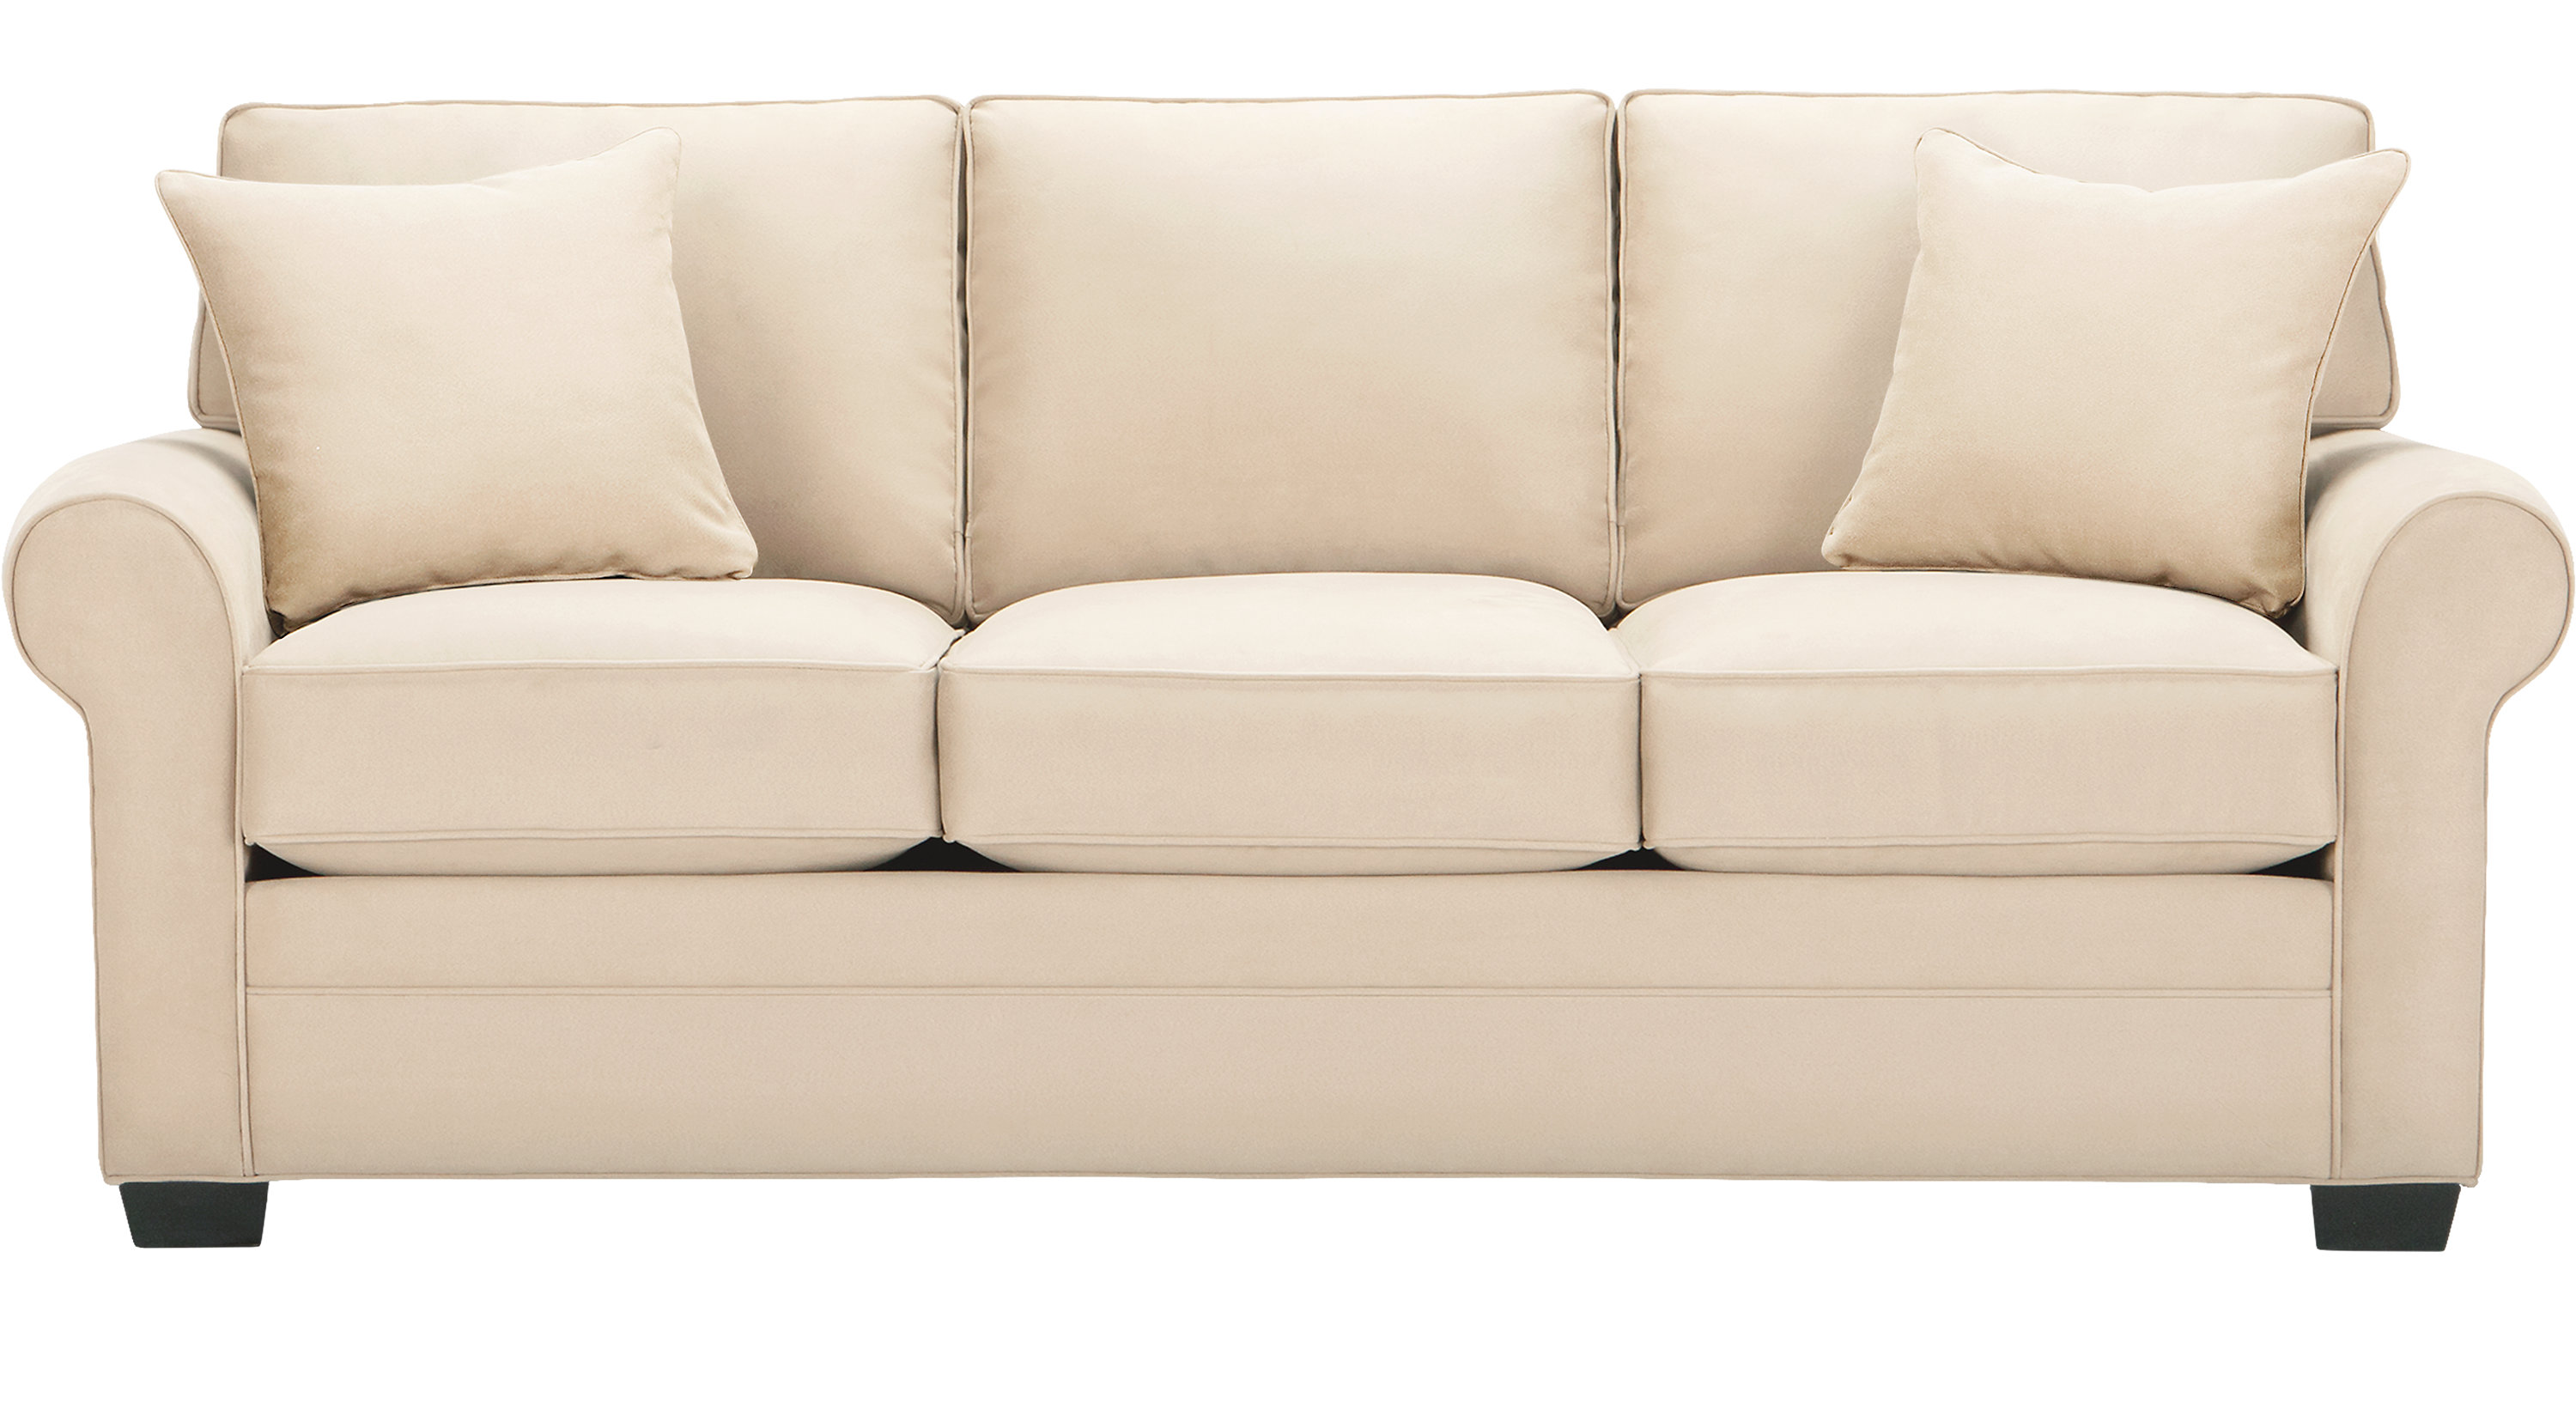 Home Sofa In A Box Cindy Crawford Home Bellingham Vanilla Sofa